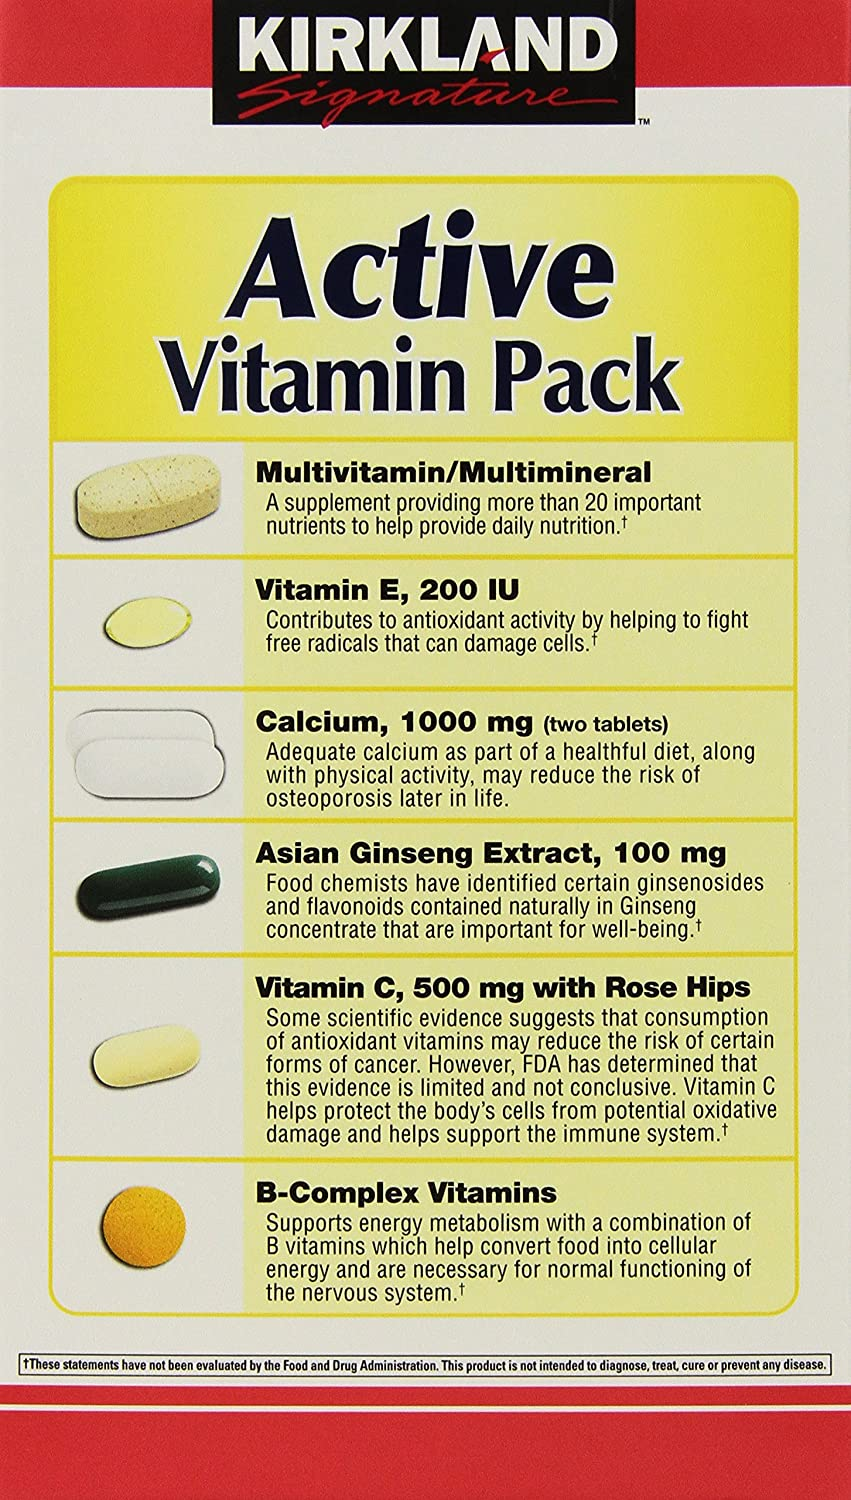 Forum on this topic: New Evidence Your Daily Multivitamin Doesn't Help , new-evidence-your-daily-multivitamin-doesnt-help/